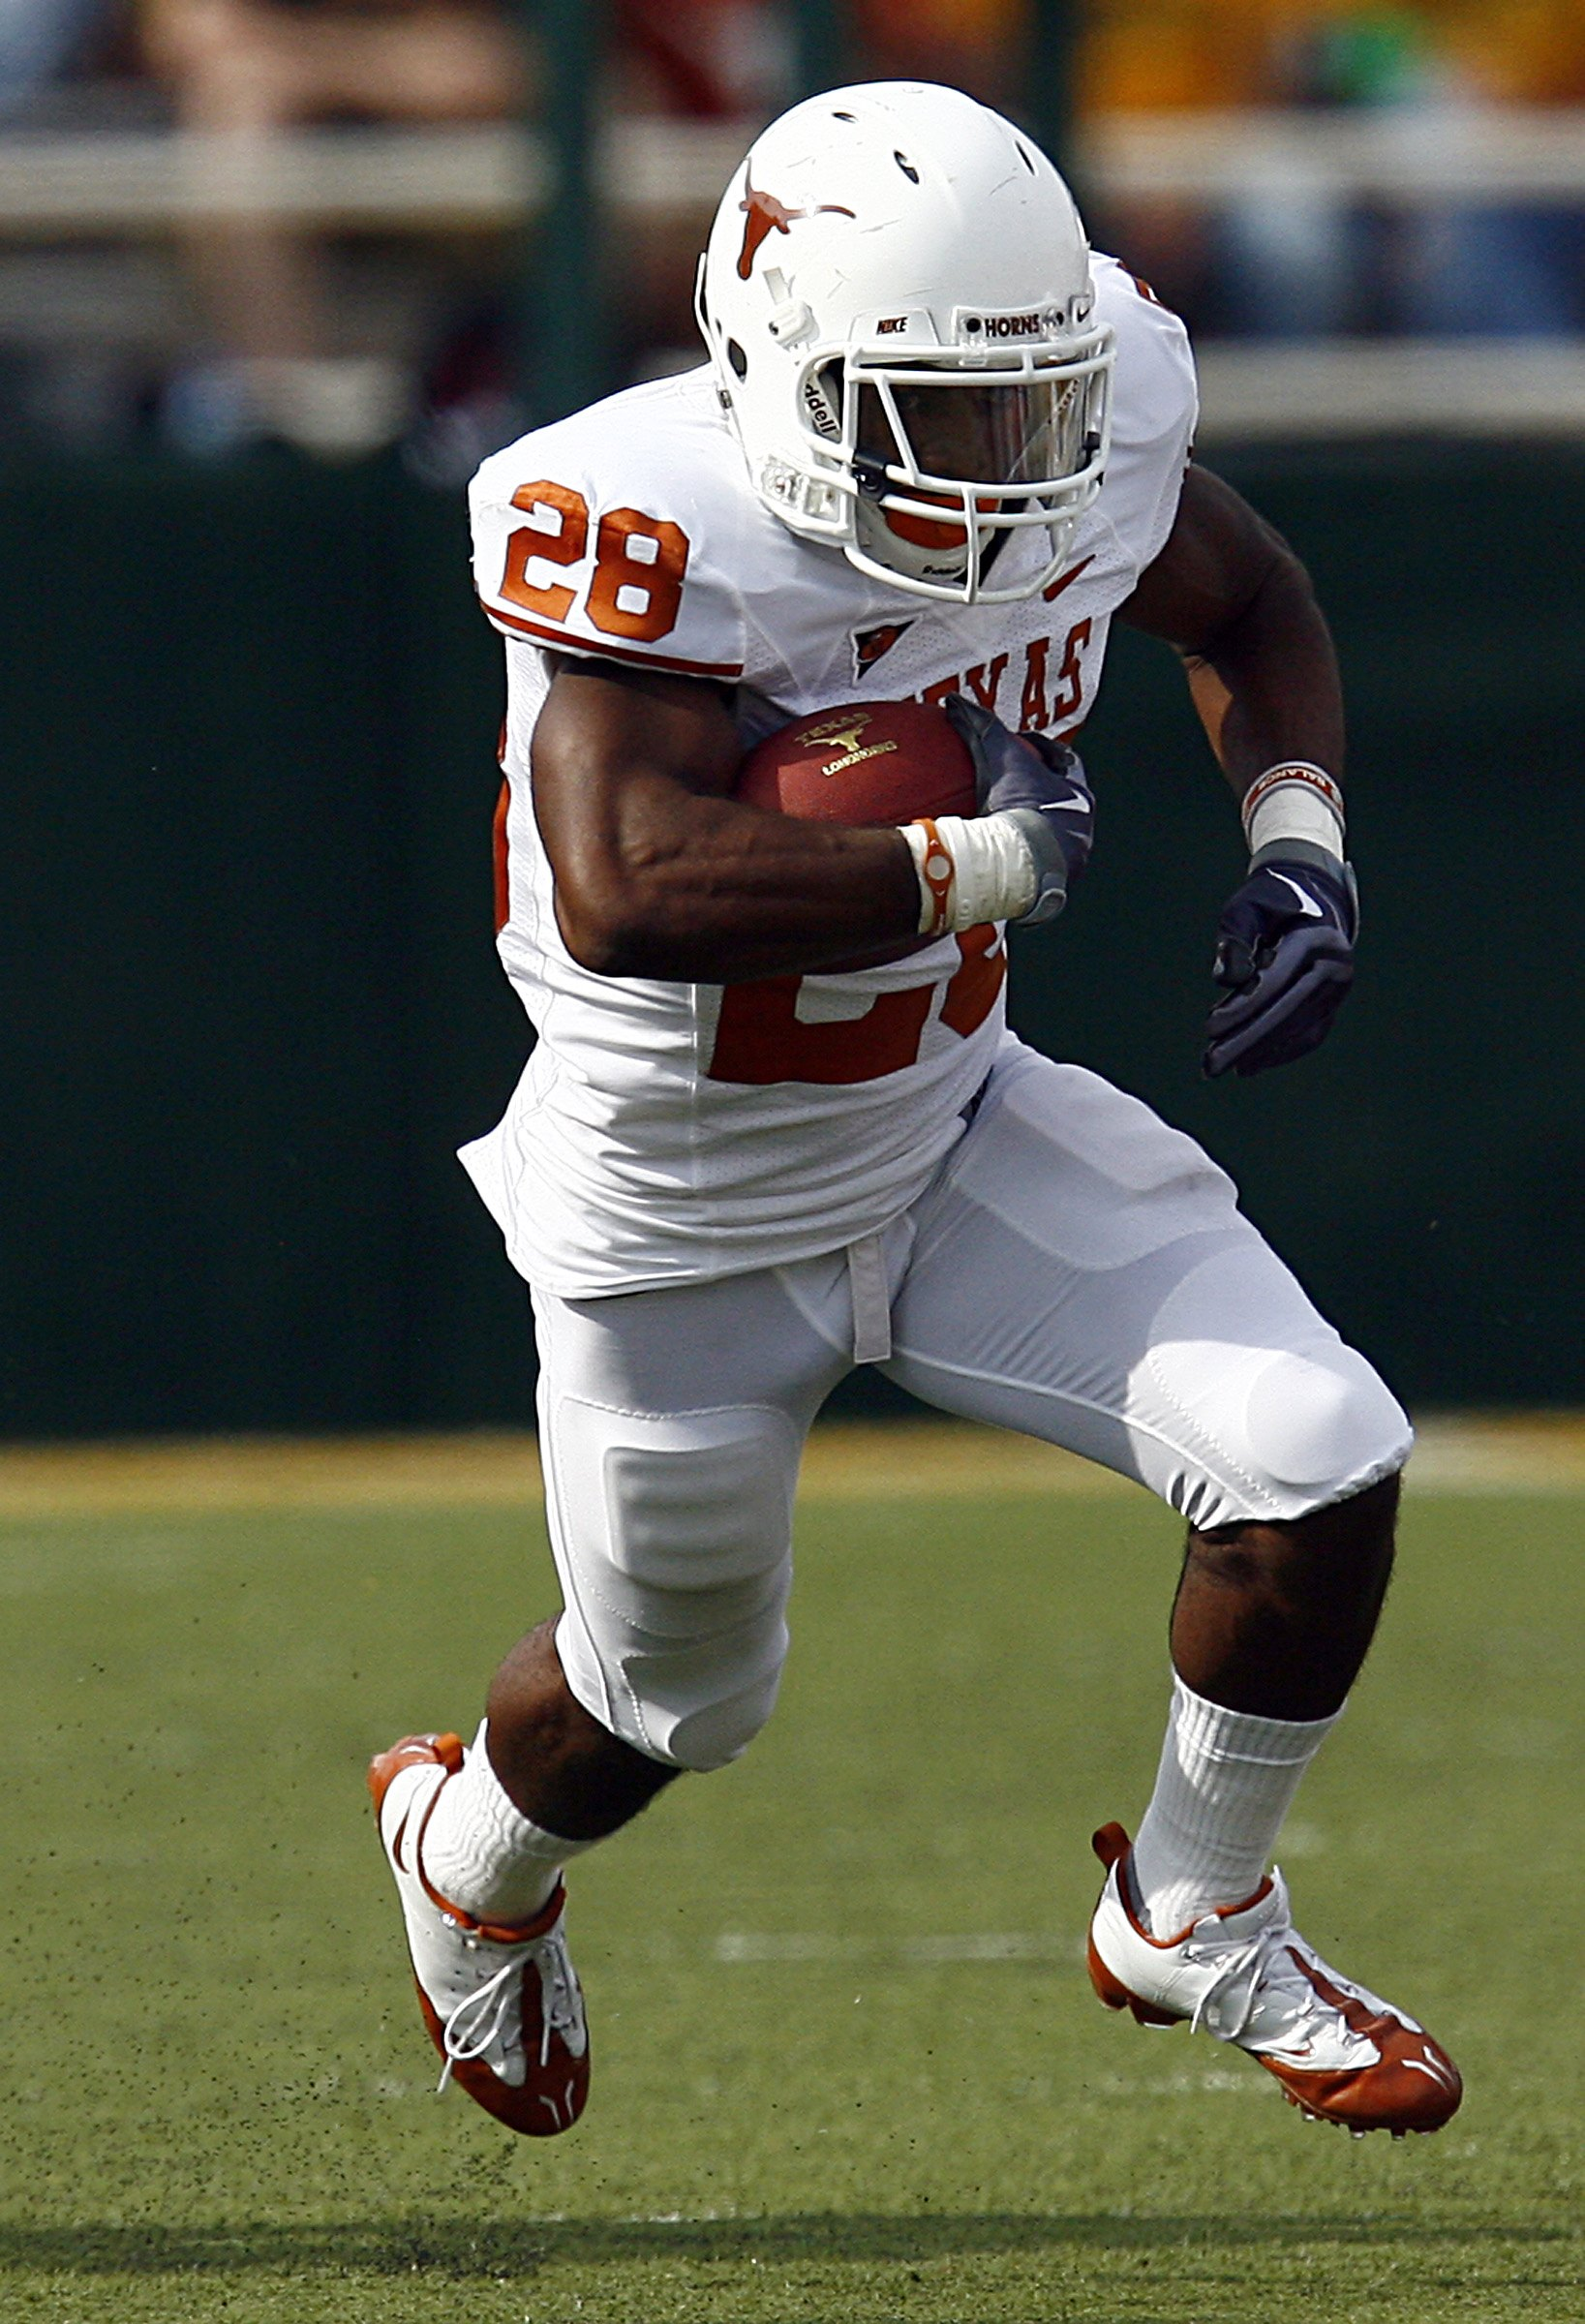 WACO, TX - NOVEMBER 14:  Running back Fozzy Whittaker #28 of the Texas Longhorns carries the ball in the first half against the Baylor Bears on November 14, 2009 at Floyd Casey Stadium in Waco, Texas.   The Longhorns beat the Bears 47-14.  (Photo by Tom P